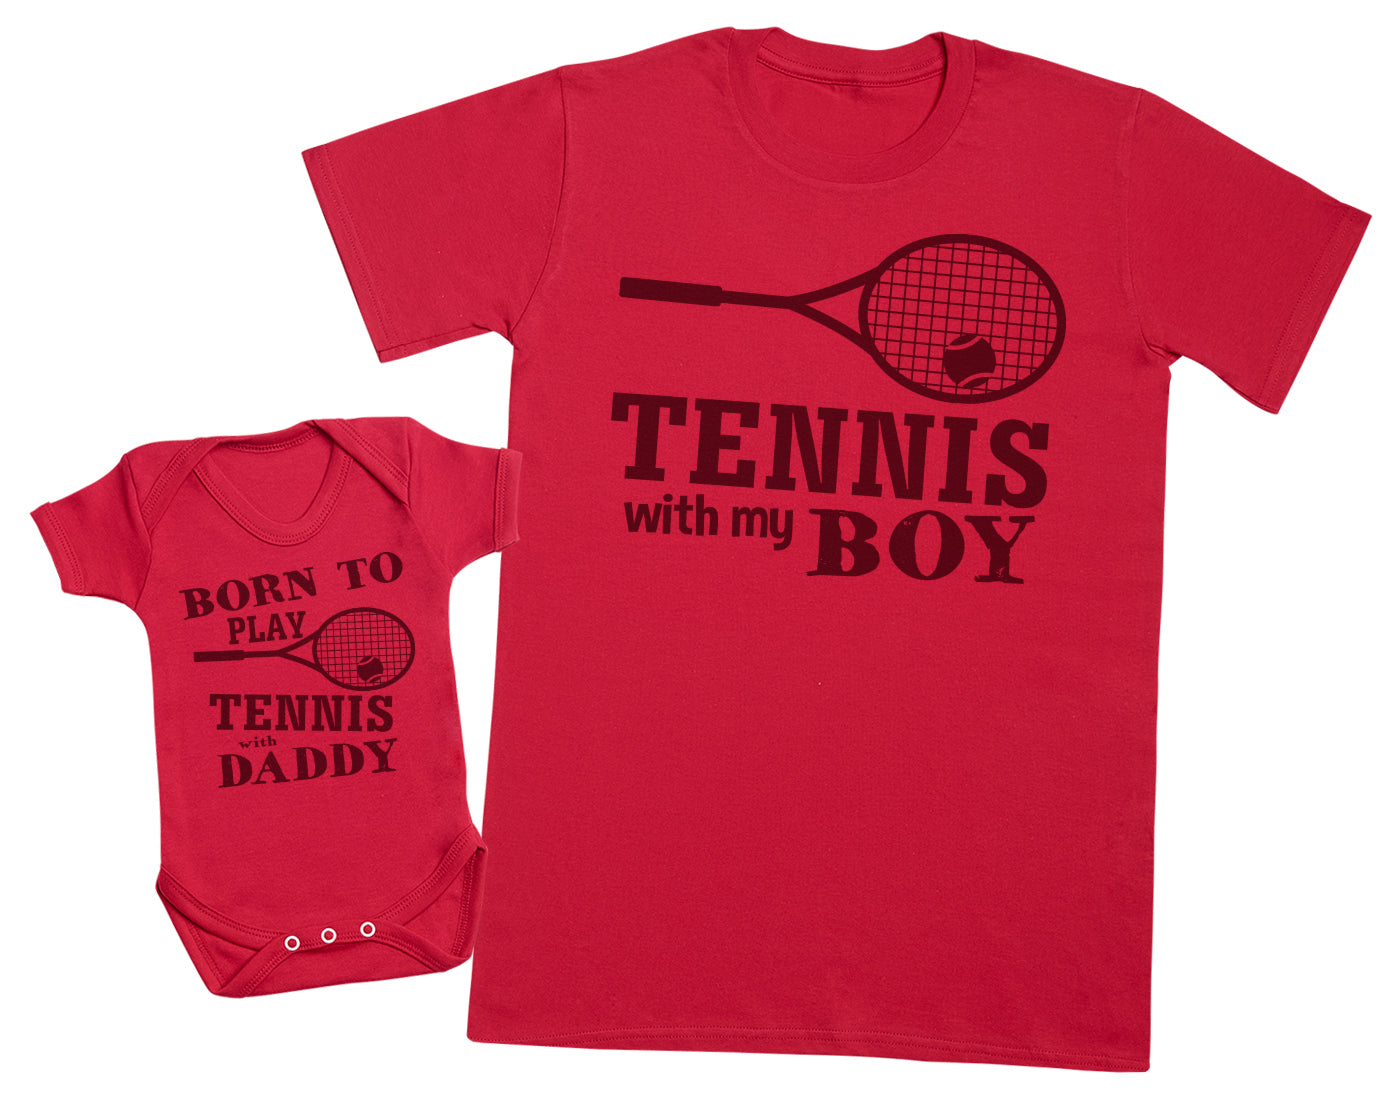 Born To Play Tennis With Daddy Matching Father Baby Gift Set - Mens T Shirt & Baby Bodysuit